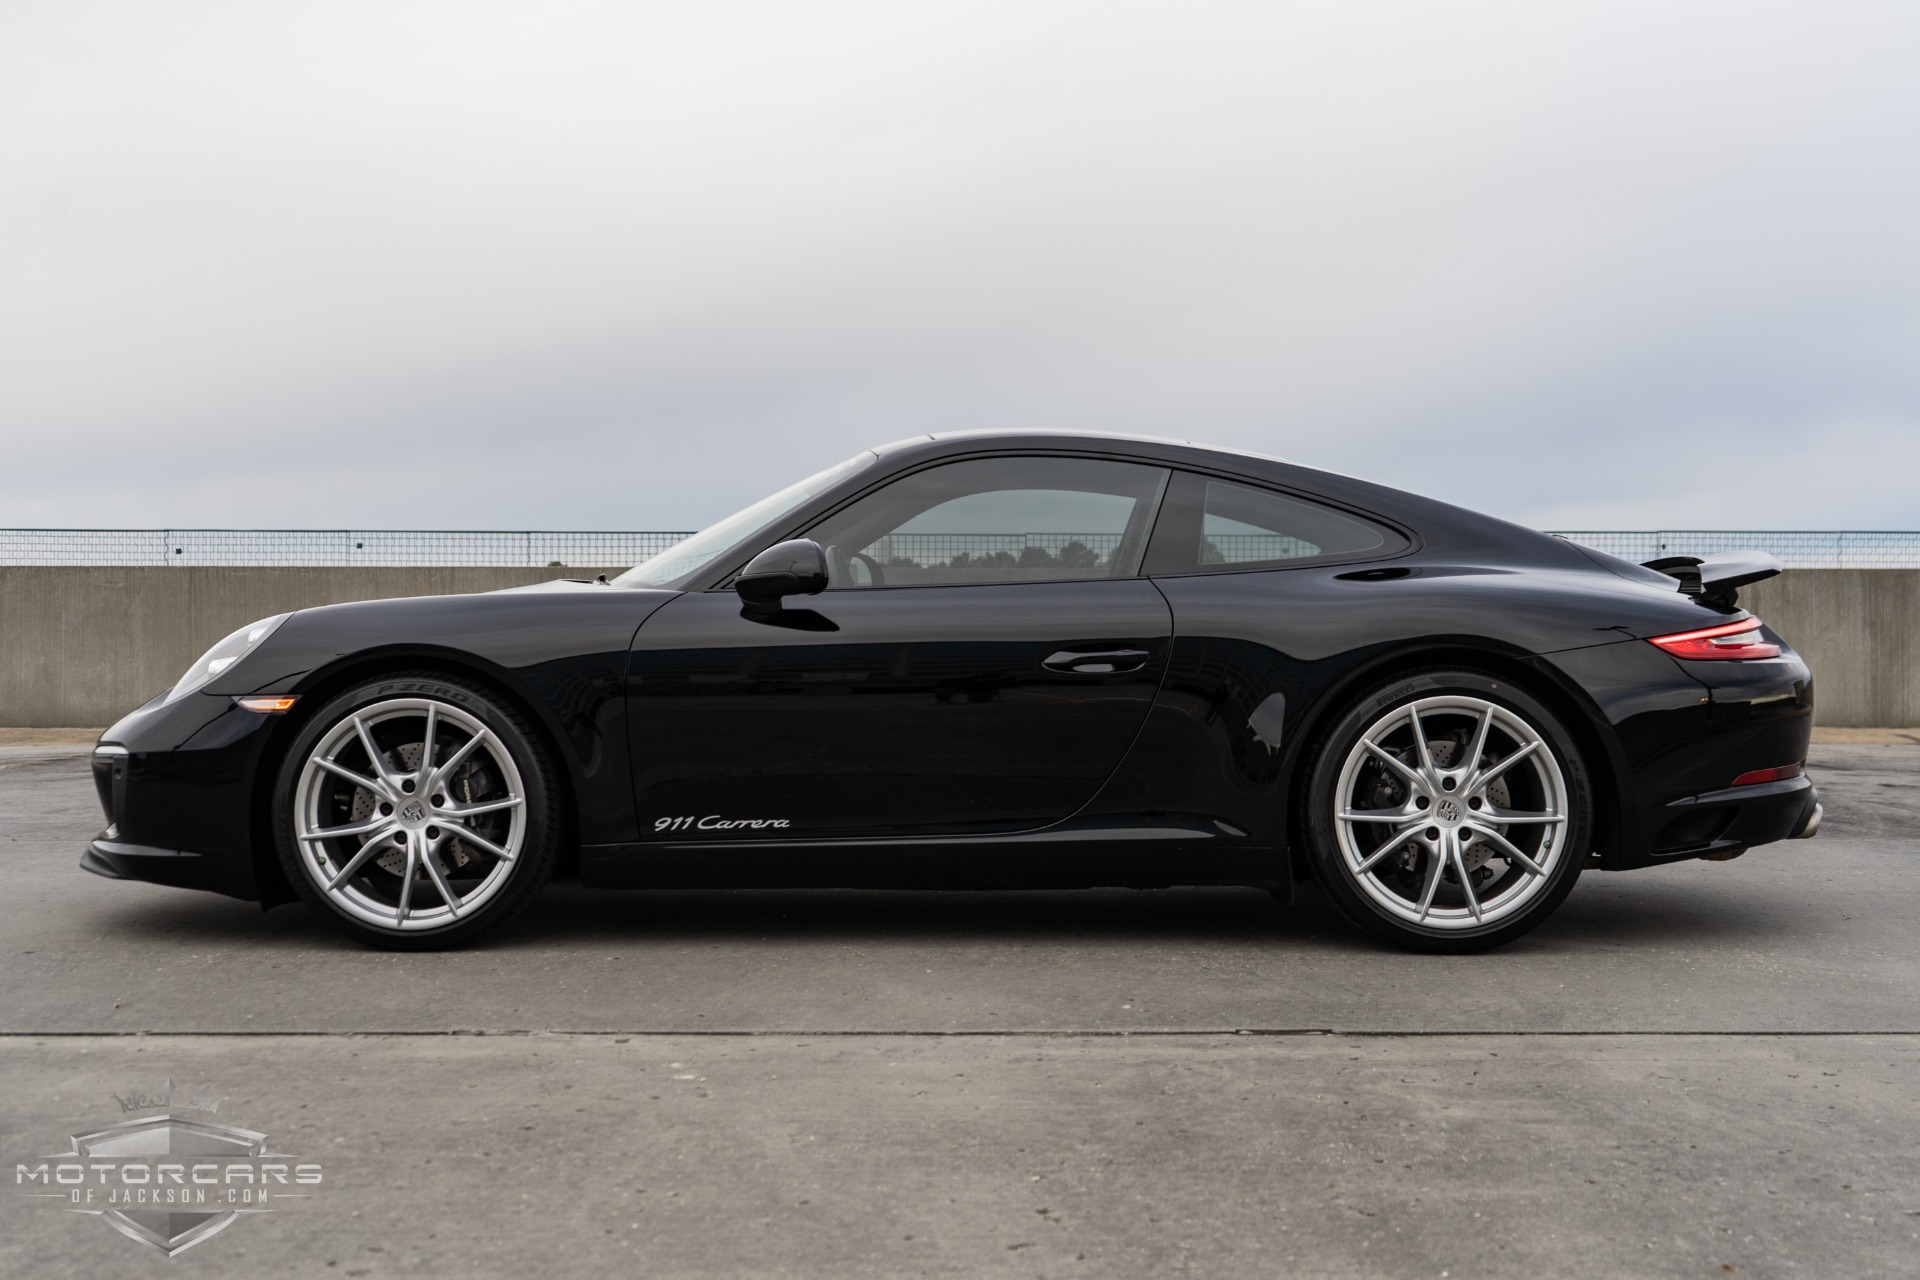 Used-2018-Porsche-911-Carrera-Jackson-MS